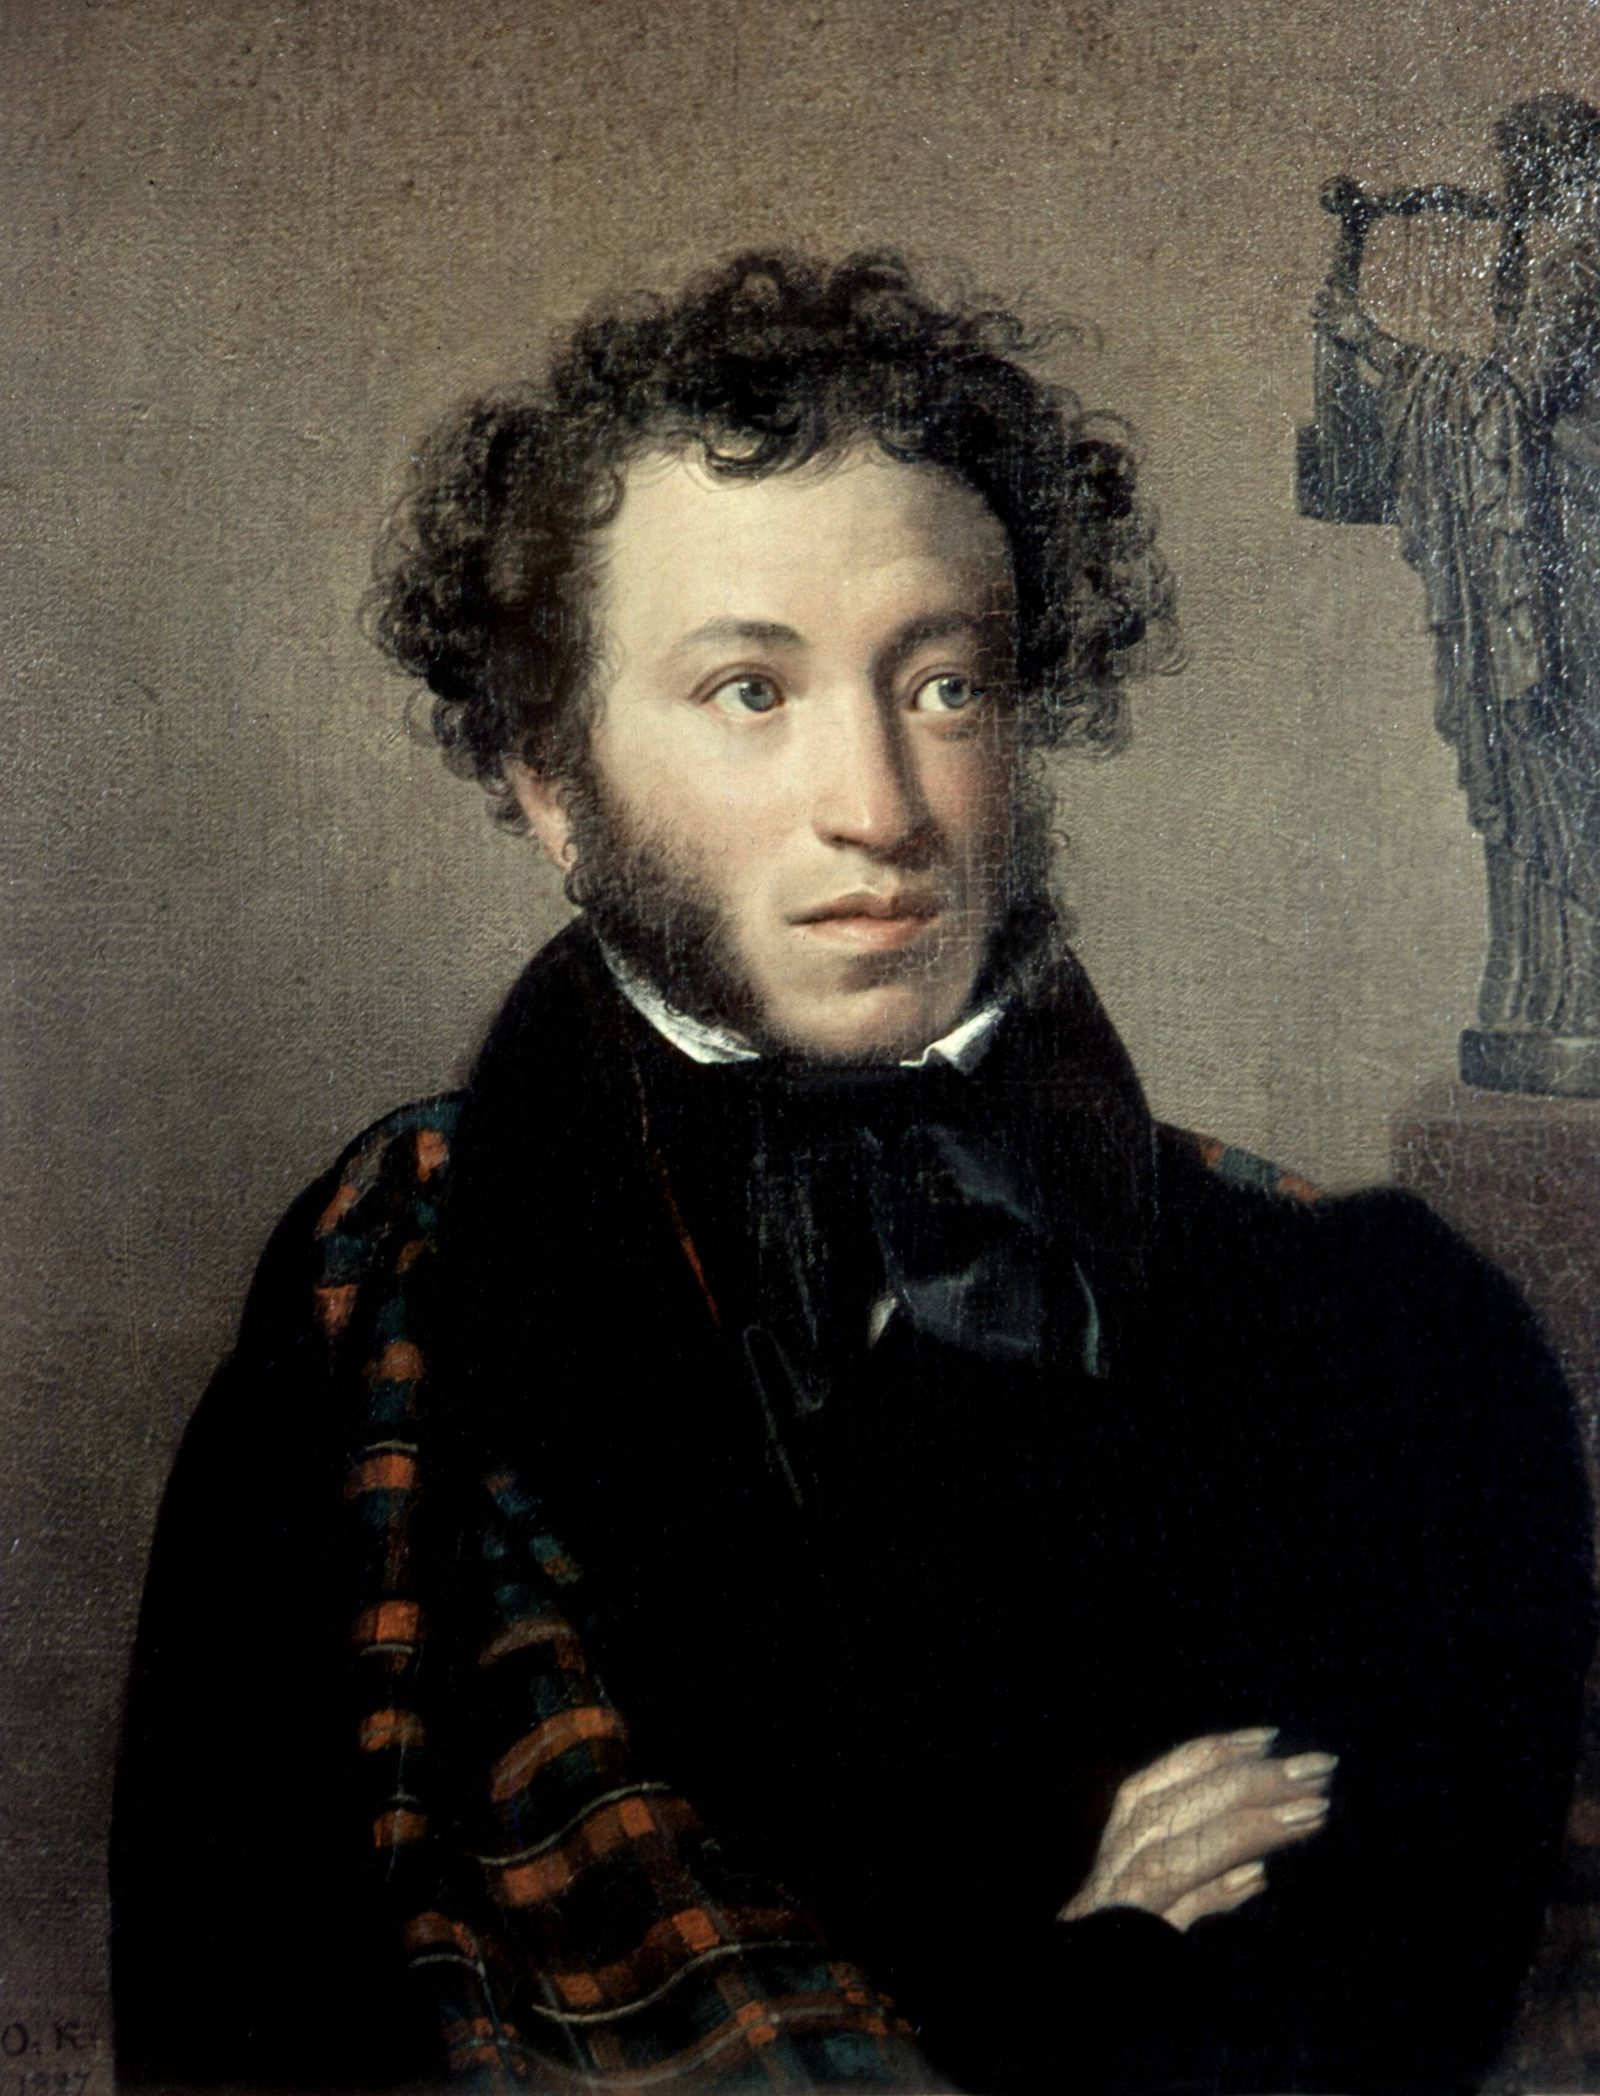 A Kippenski Portrait of Alexander Pushkin A Kippenski 1782 1836 Portrait of Alexander Pushkin 1